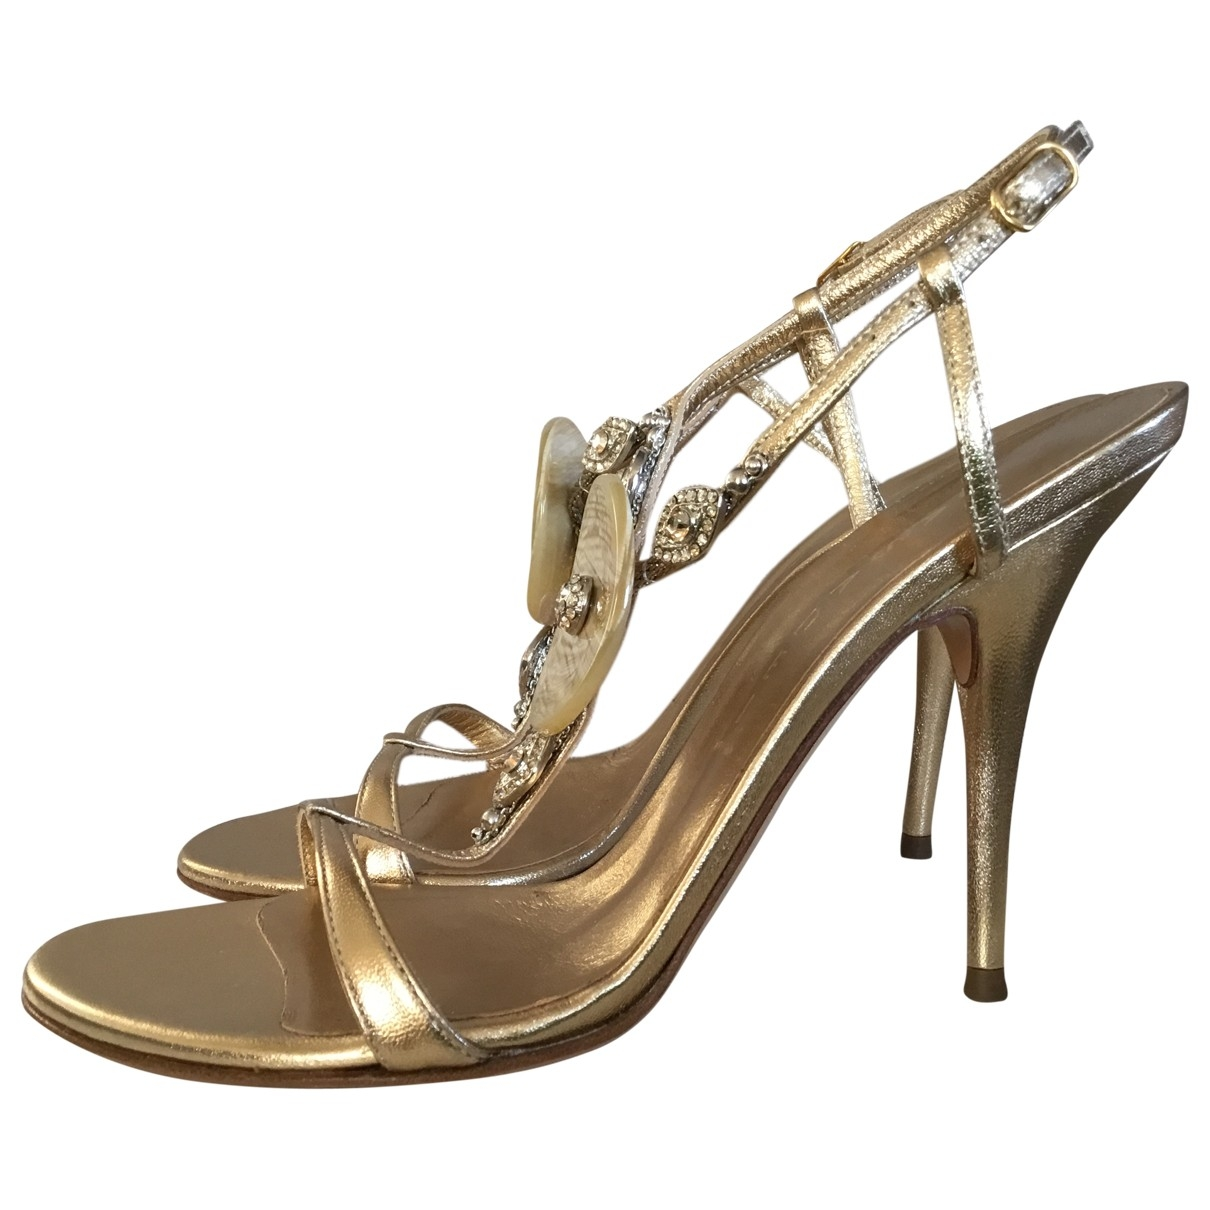 Casadei \N Gold Leather Heels for Women 7.5 US